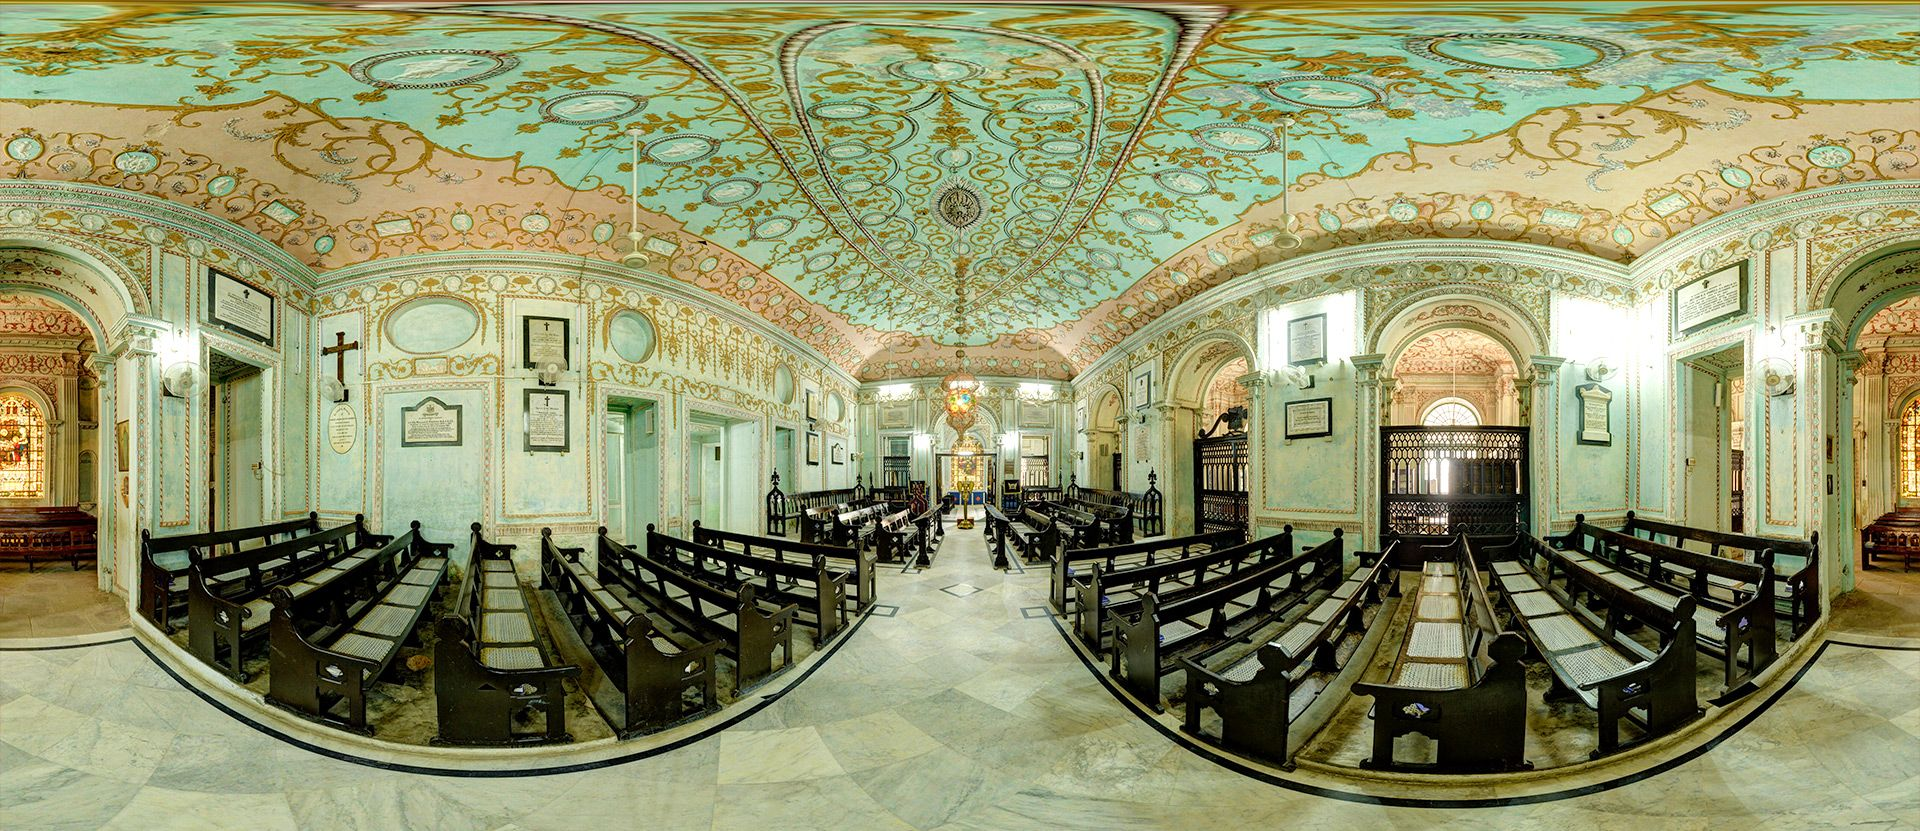 360 Panorama Of The La Martiniere College Church Degree Throw Your Ball Camera To Take Panoramic Photos